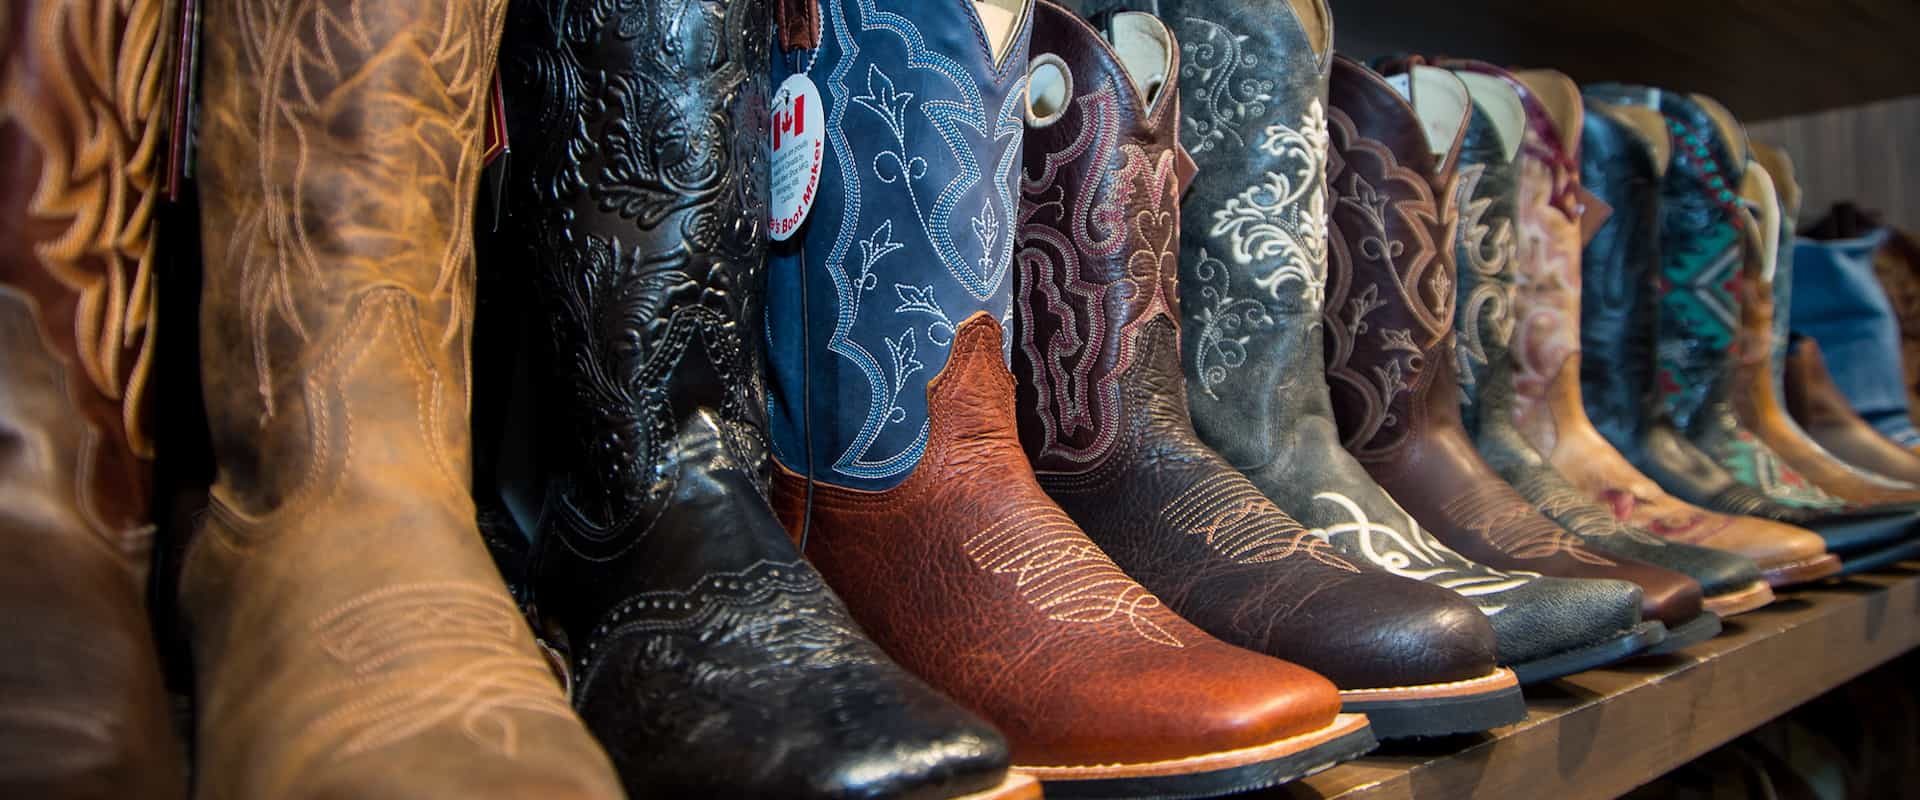 Choose from a variety of cowboy boots at the Trail Rider Store